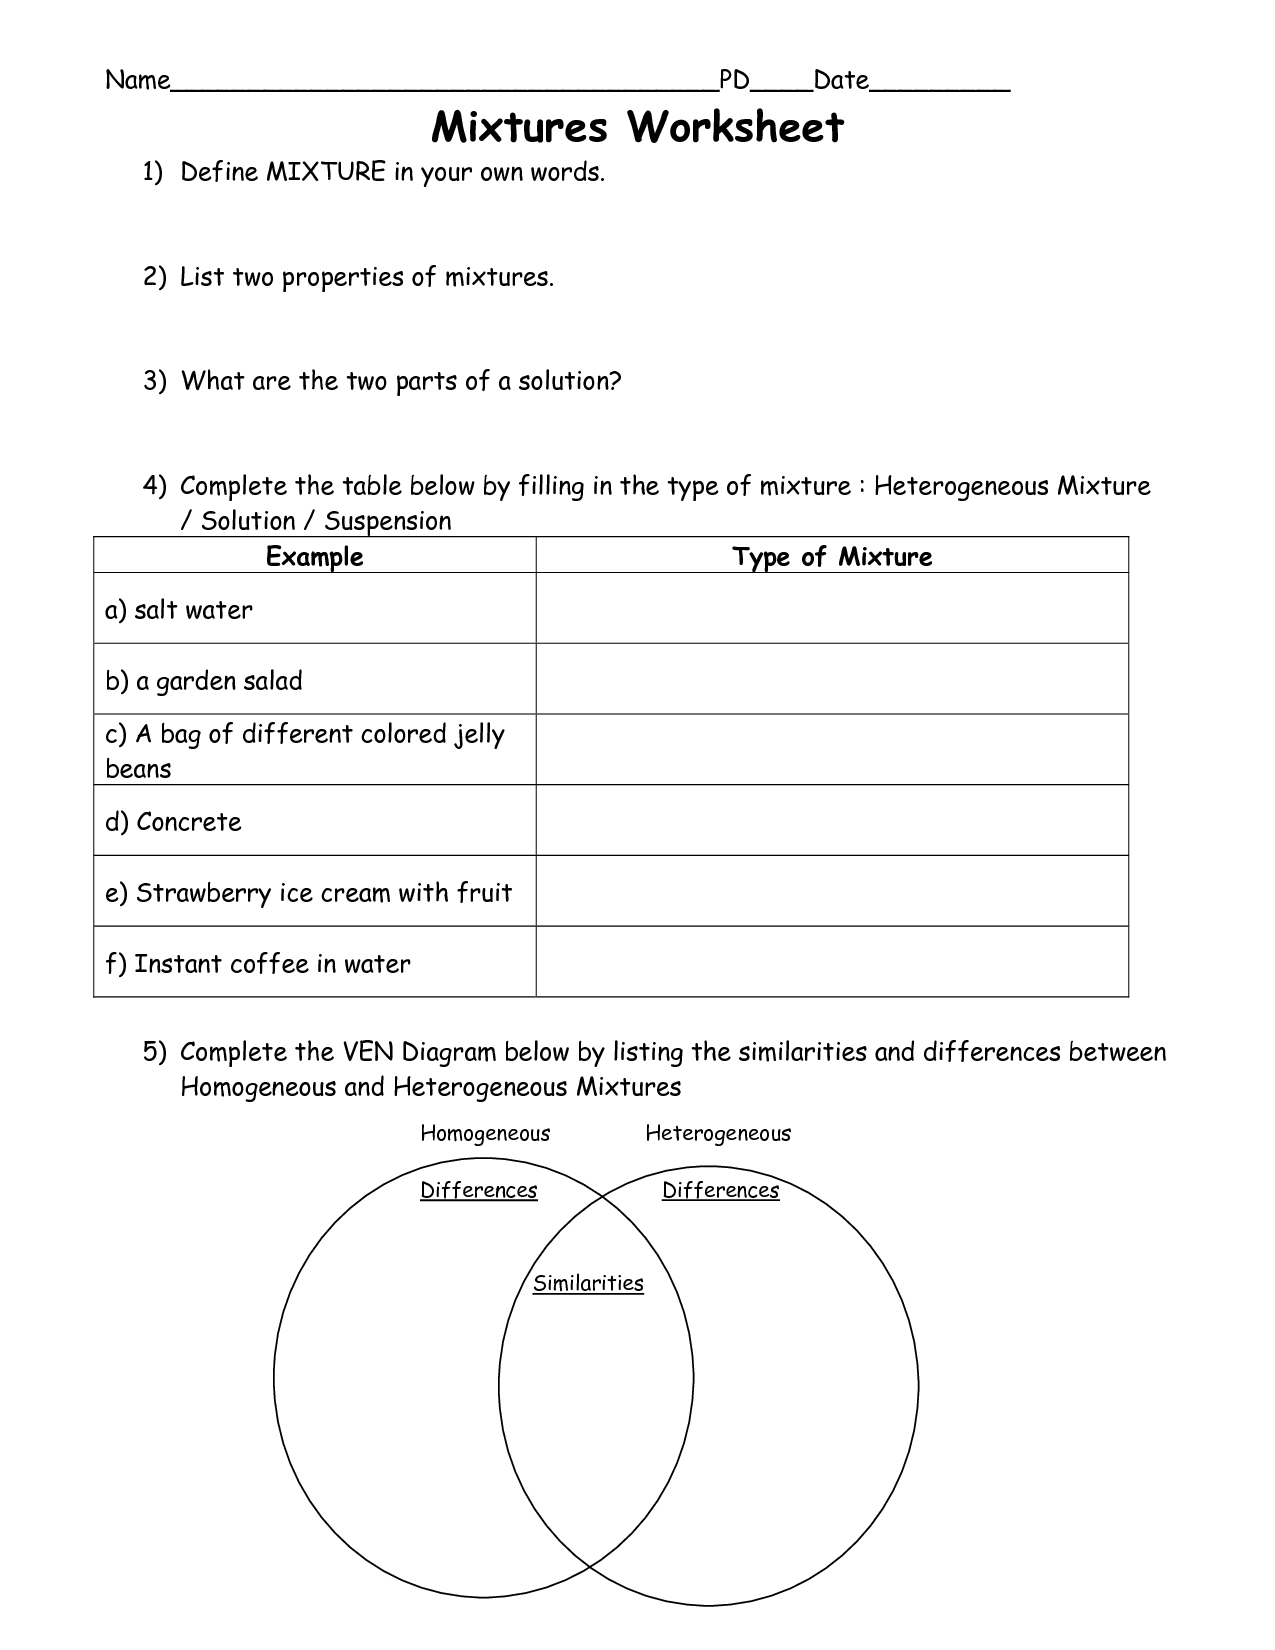 Elements Of Art Worksheets | Scope Of Work Template | Art Handout | Free Printable Worksheets On Mixtures And Solutions